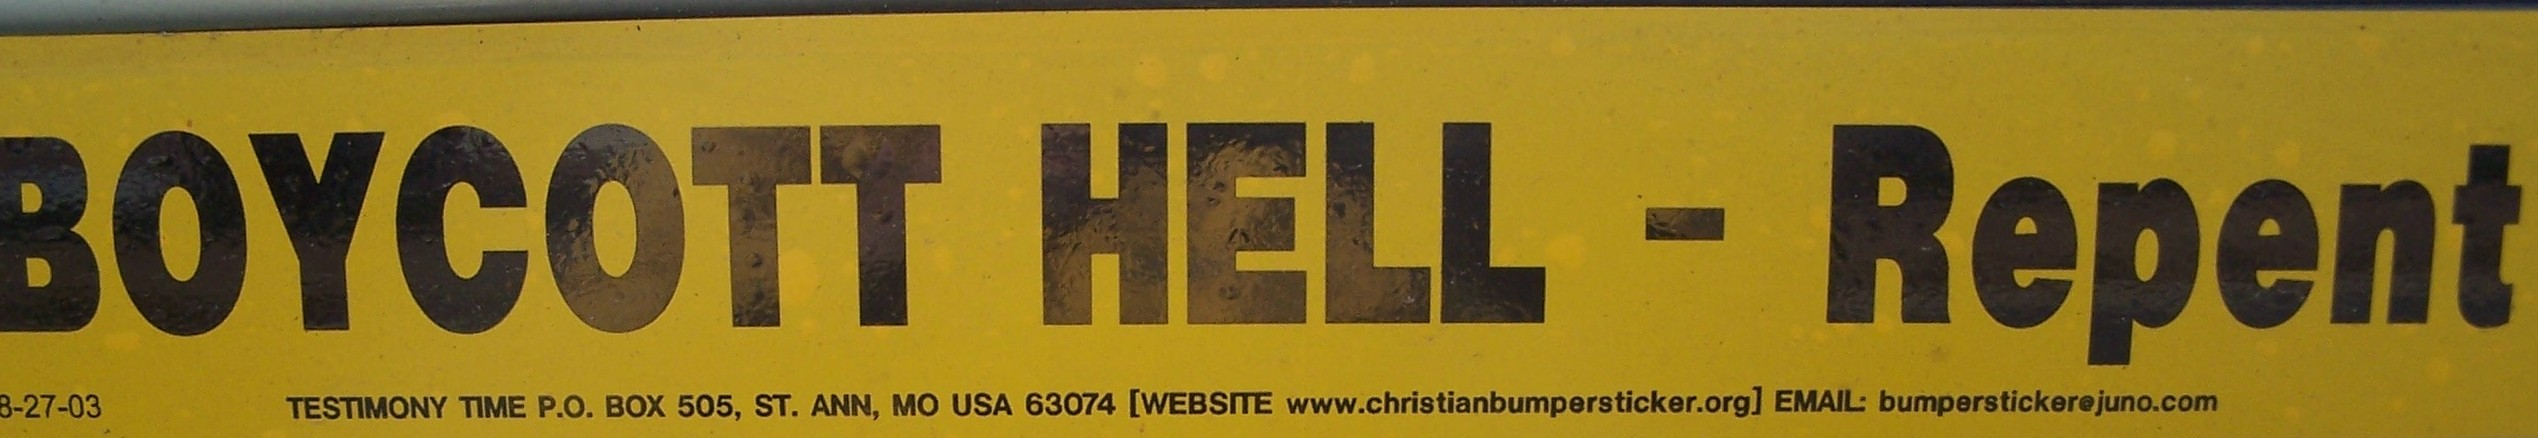 boycott hell bumper sticker